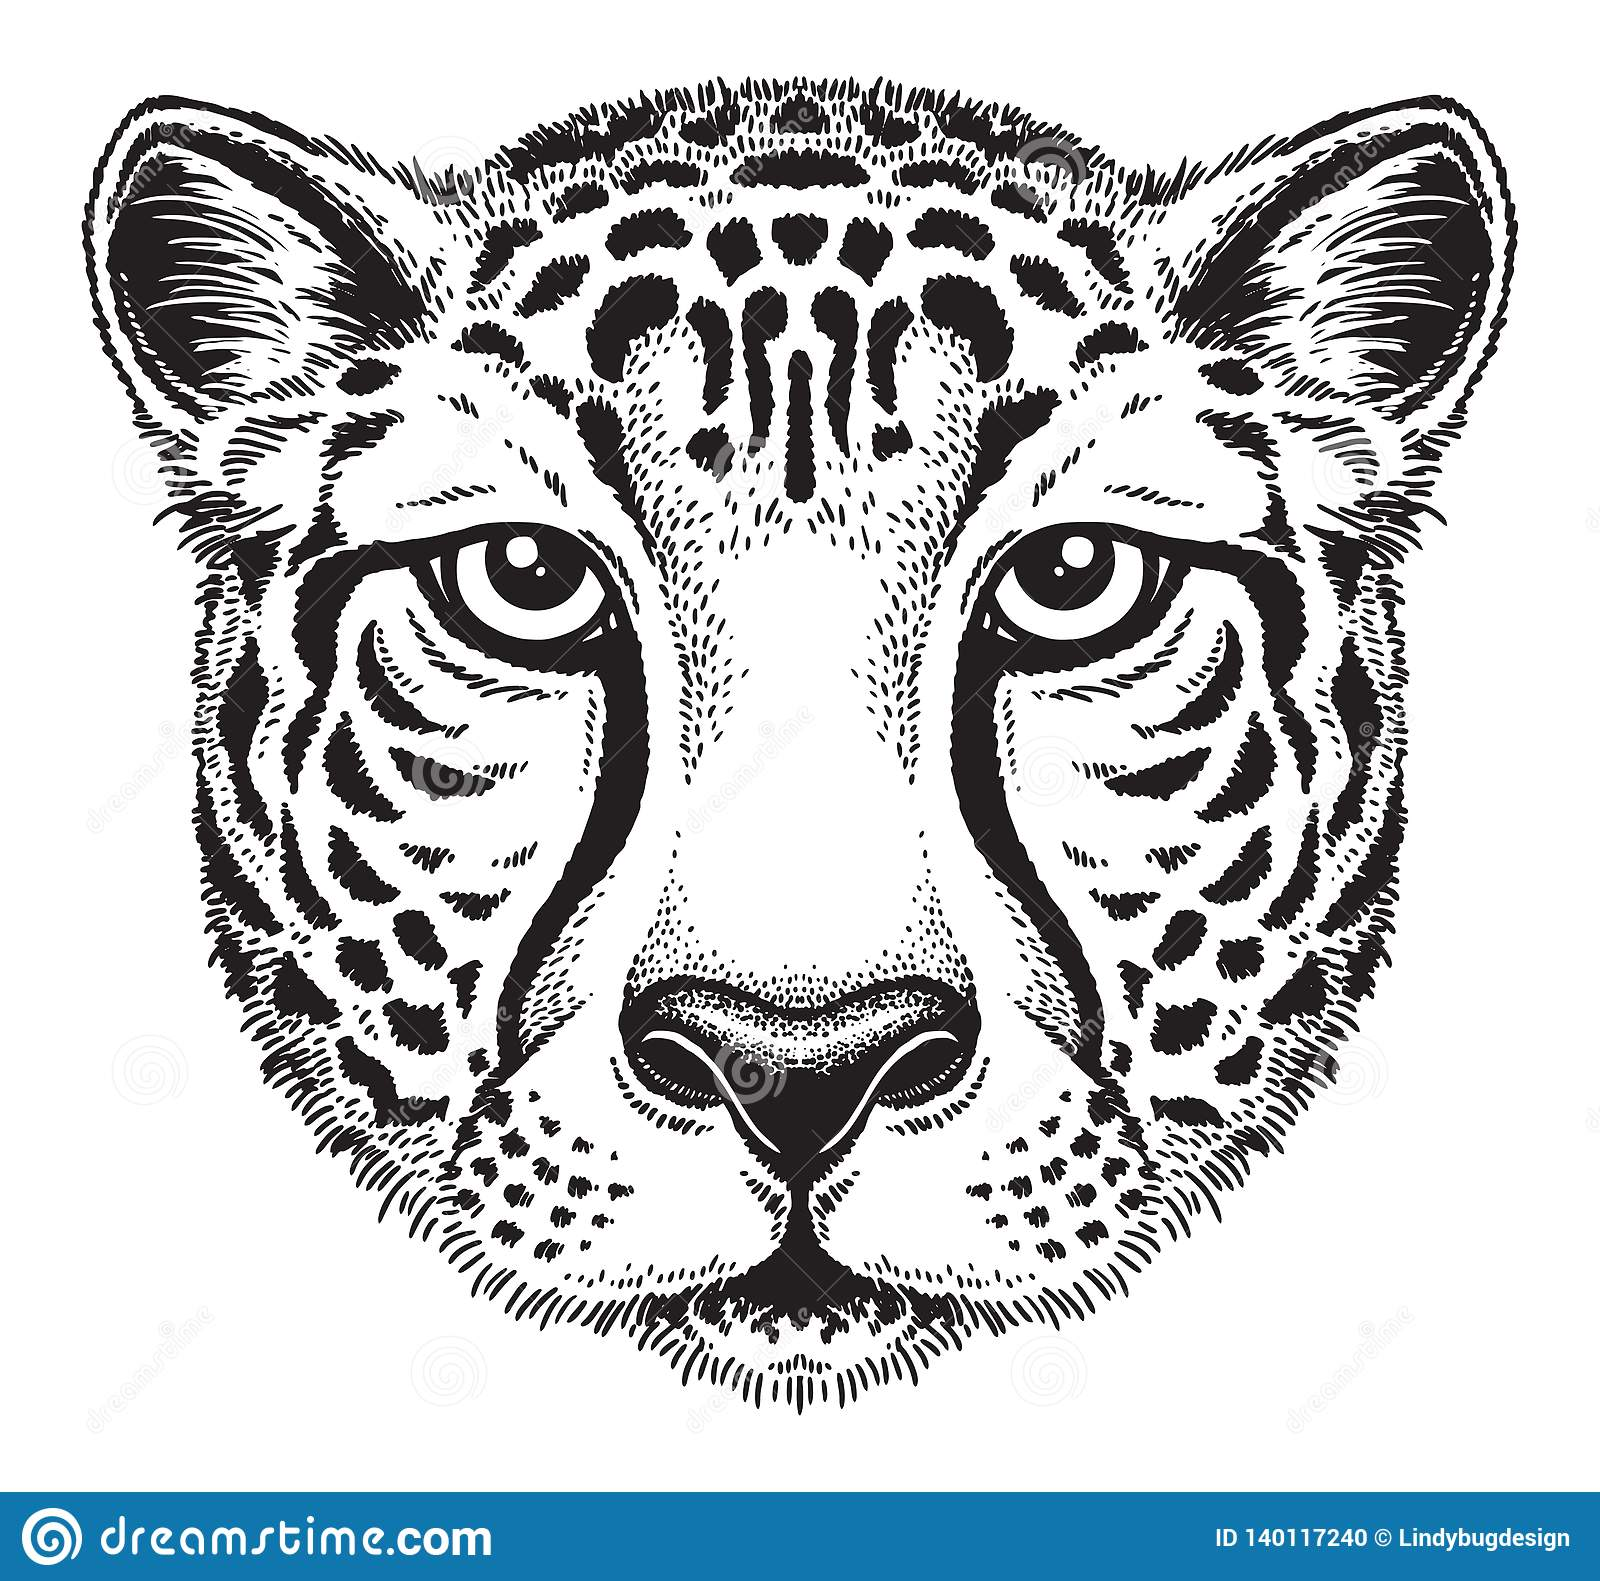 Black and white line drawing of a cheetahs face